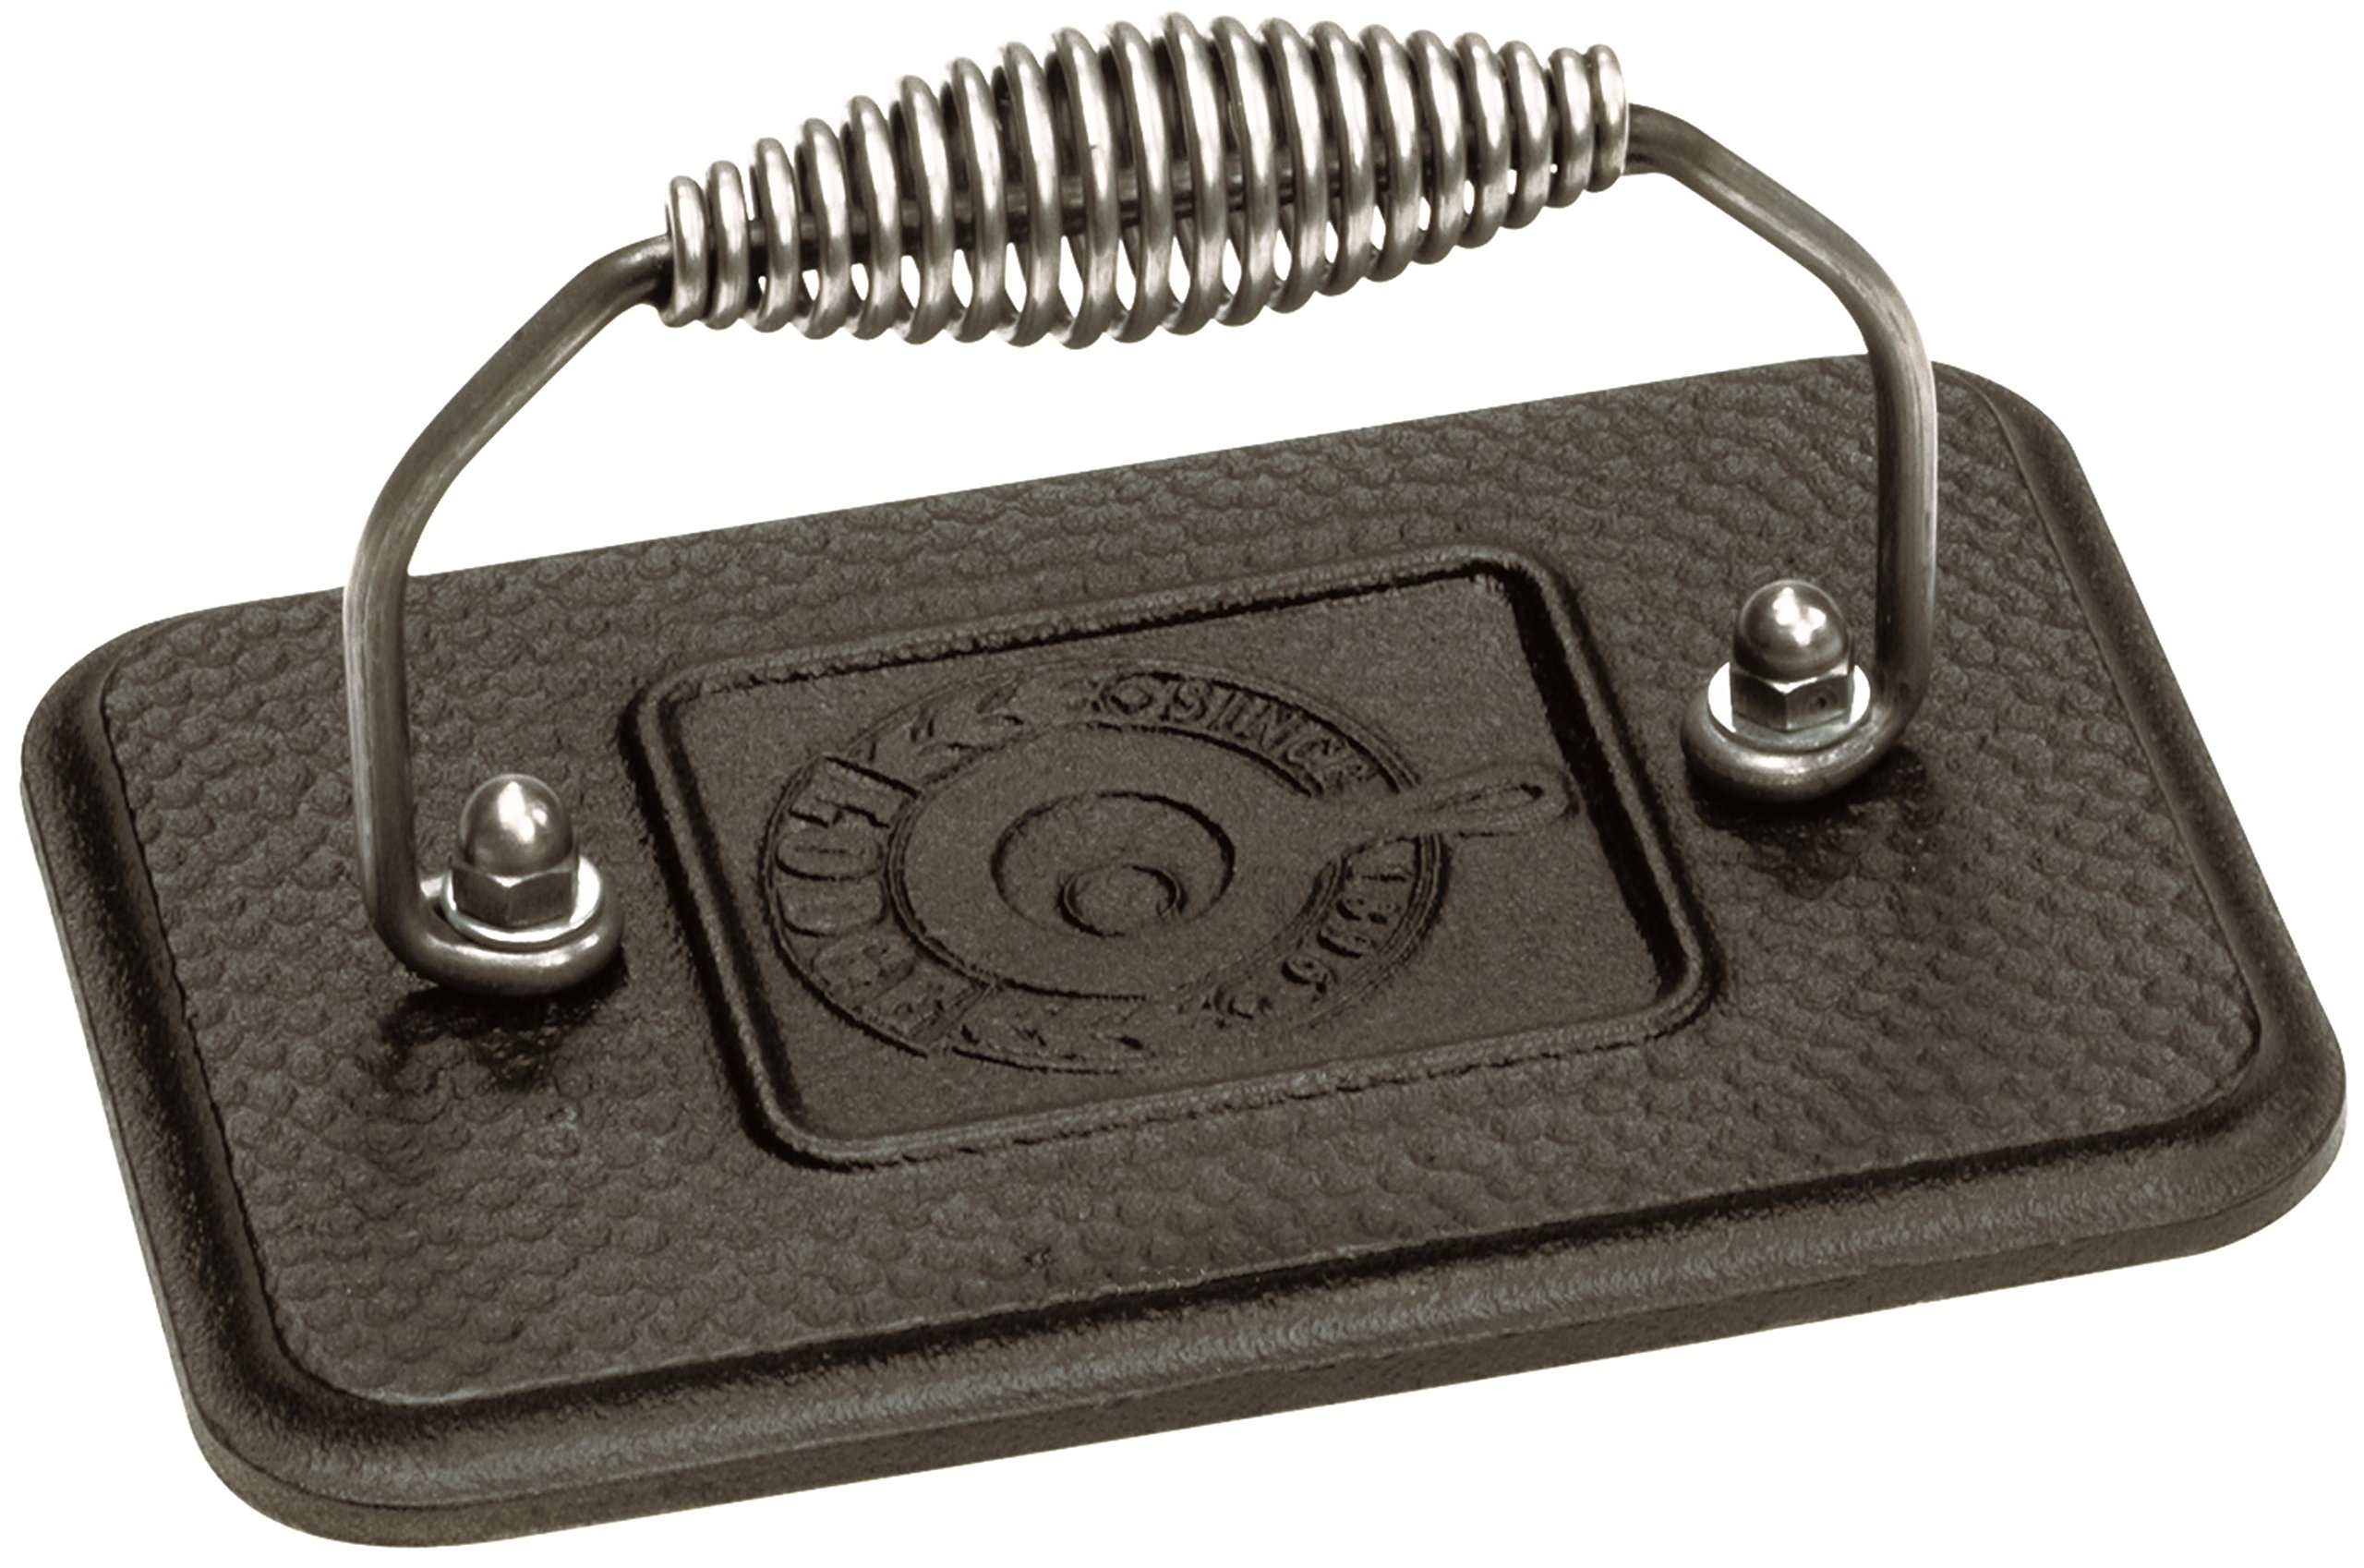 Lodge Rectangular Cast Iron Grill Press. 6.75 x 4.5'' Cast Iron Grill Press with Cool-Grip Spiral Handle.